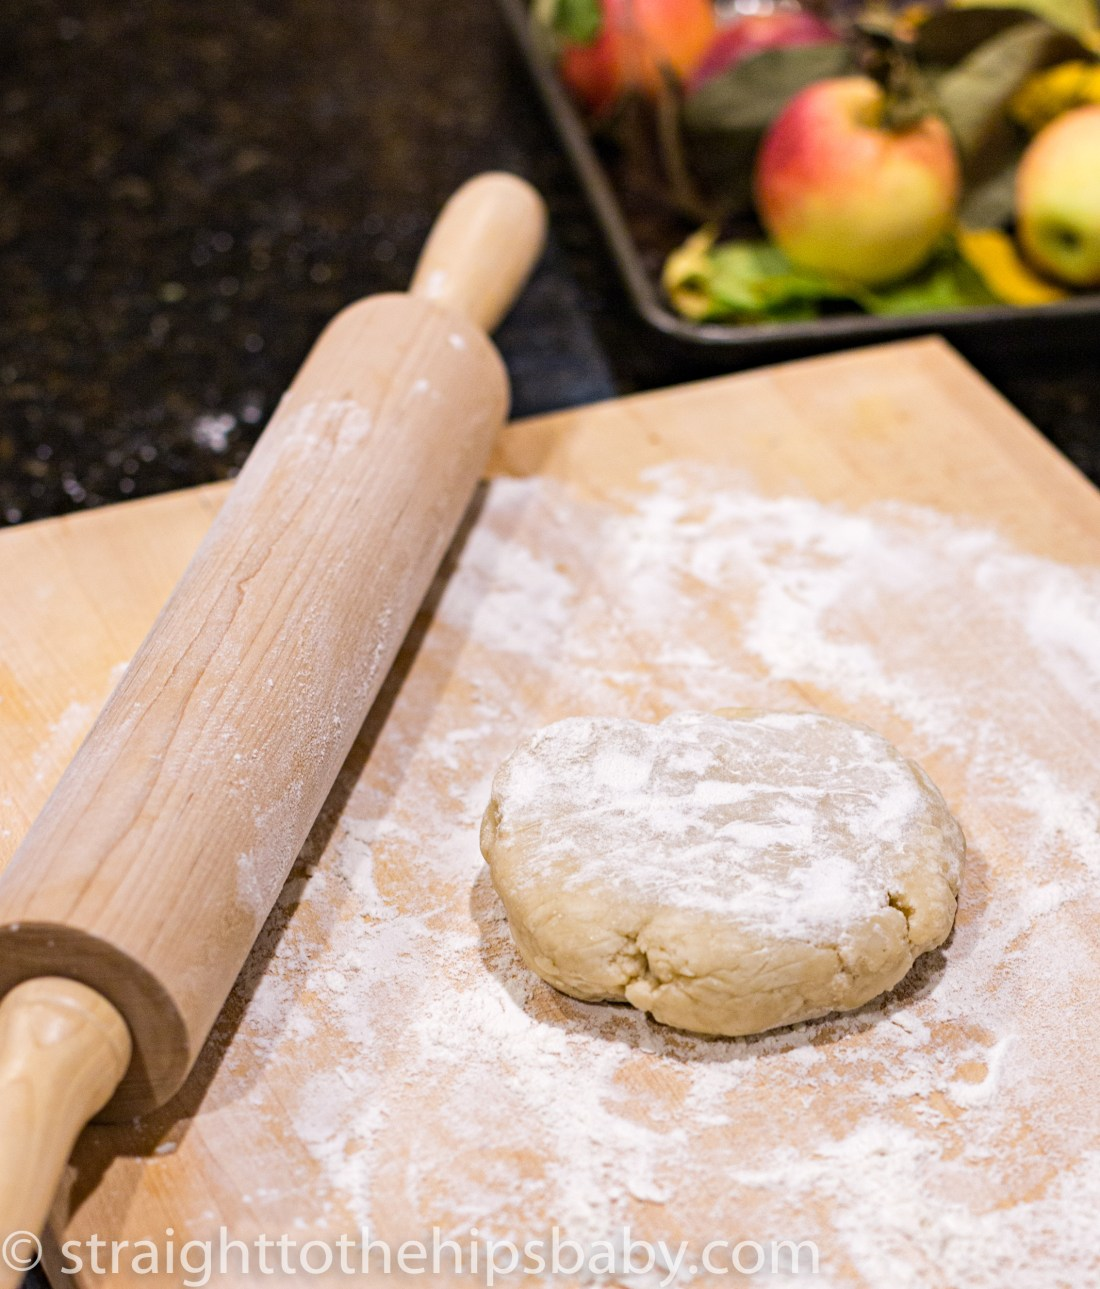 a disk of dough sitting on a floured cutting board, with a wooden rolling pin beside it